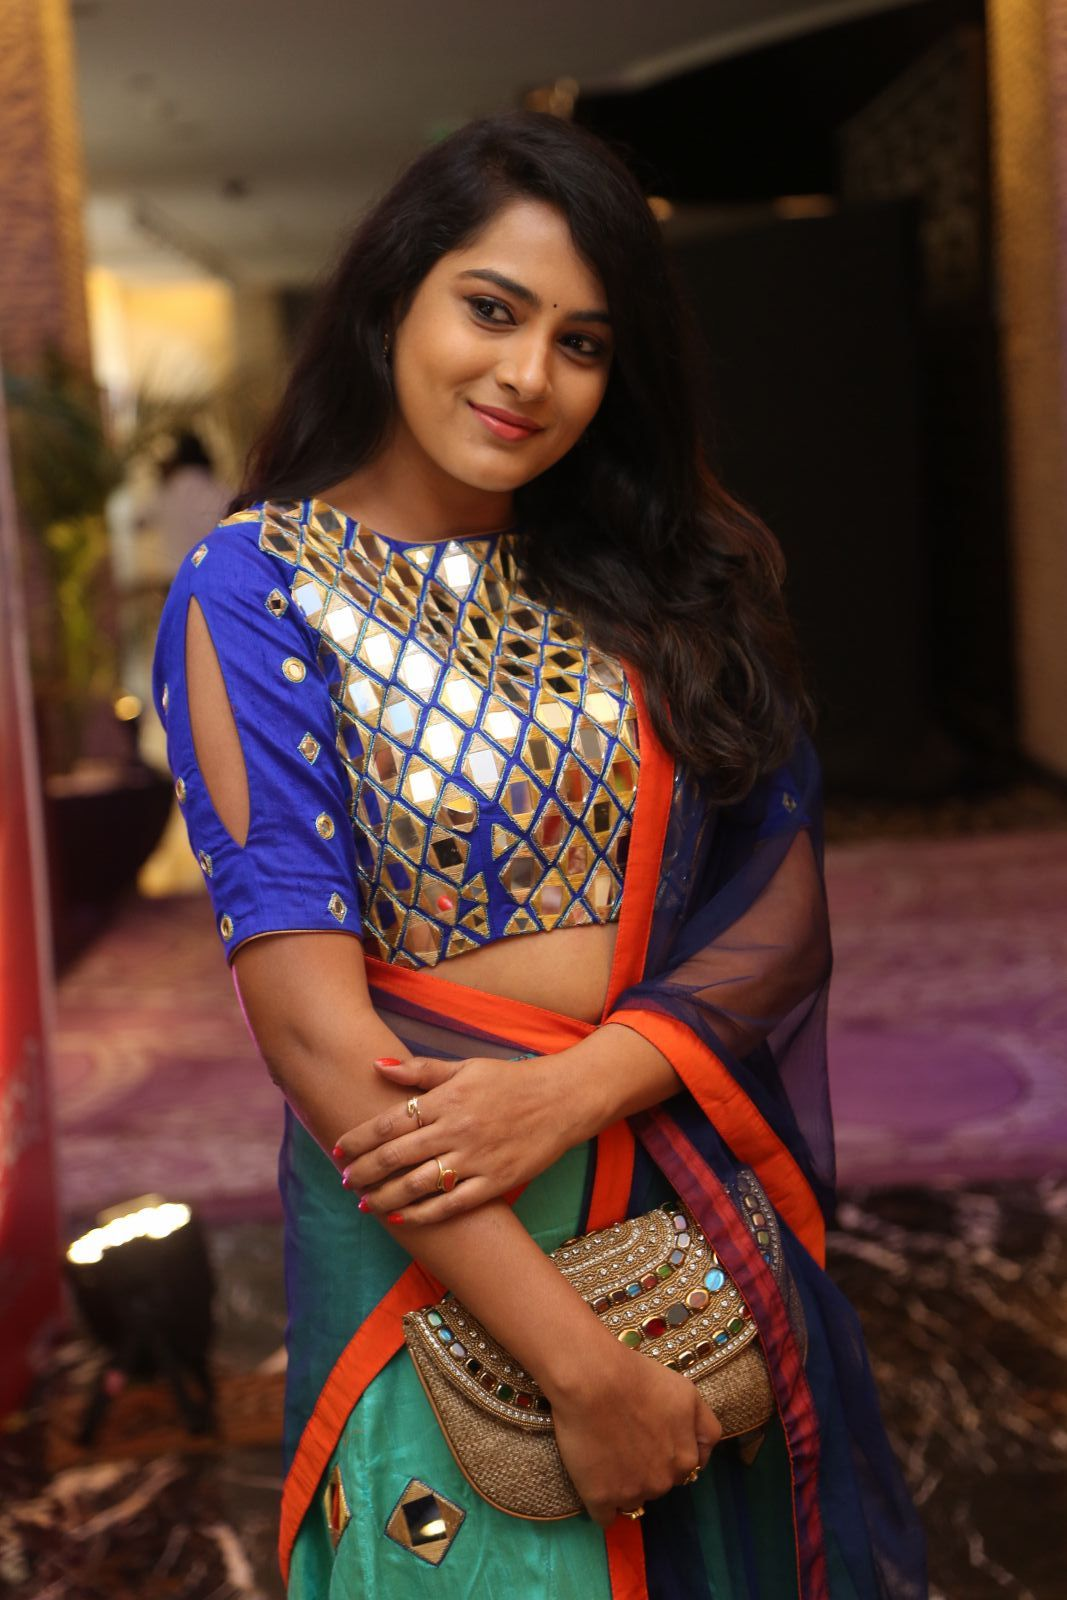 himaza Brand New Photo Stills of Tollywood Actress Himaza | South Actresses Himaza 72